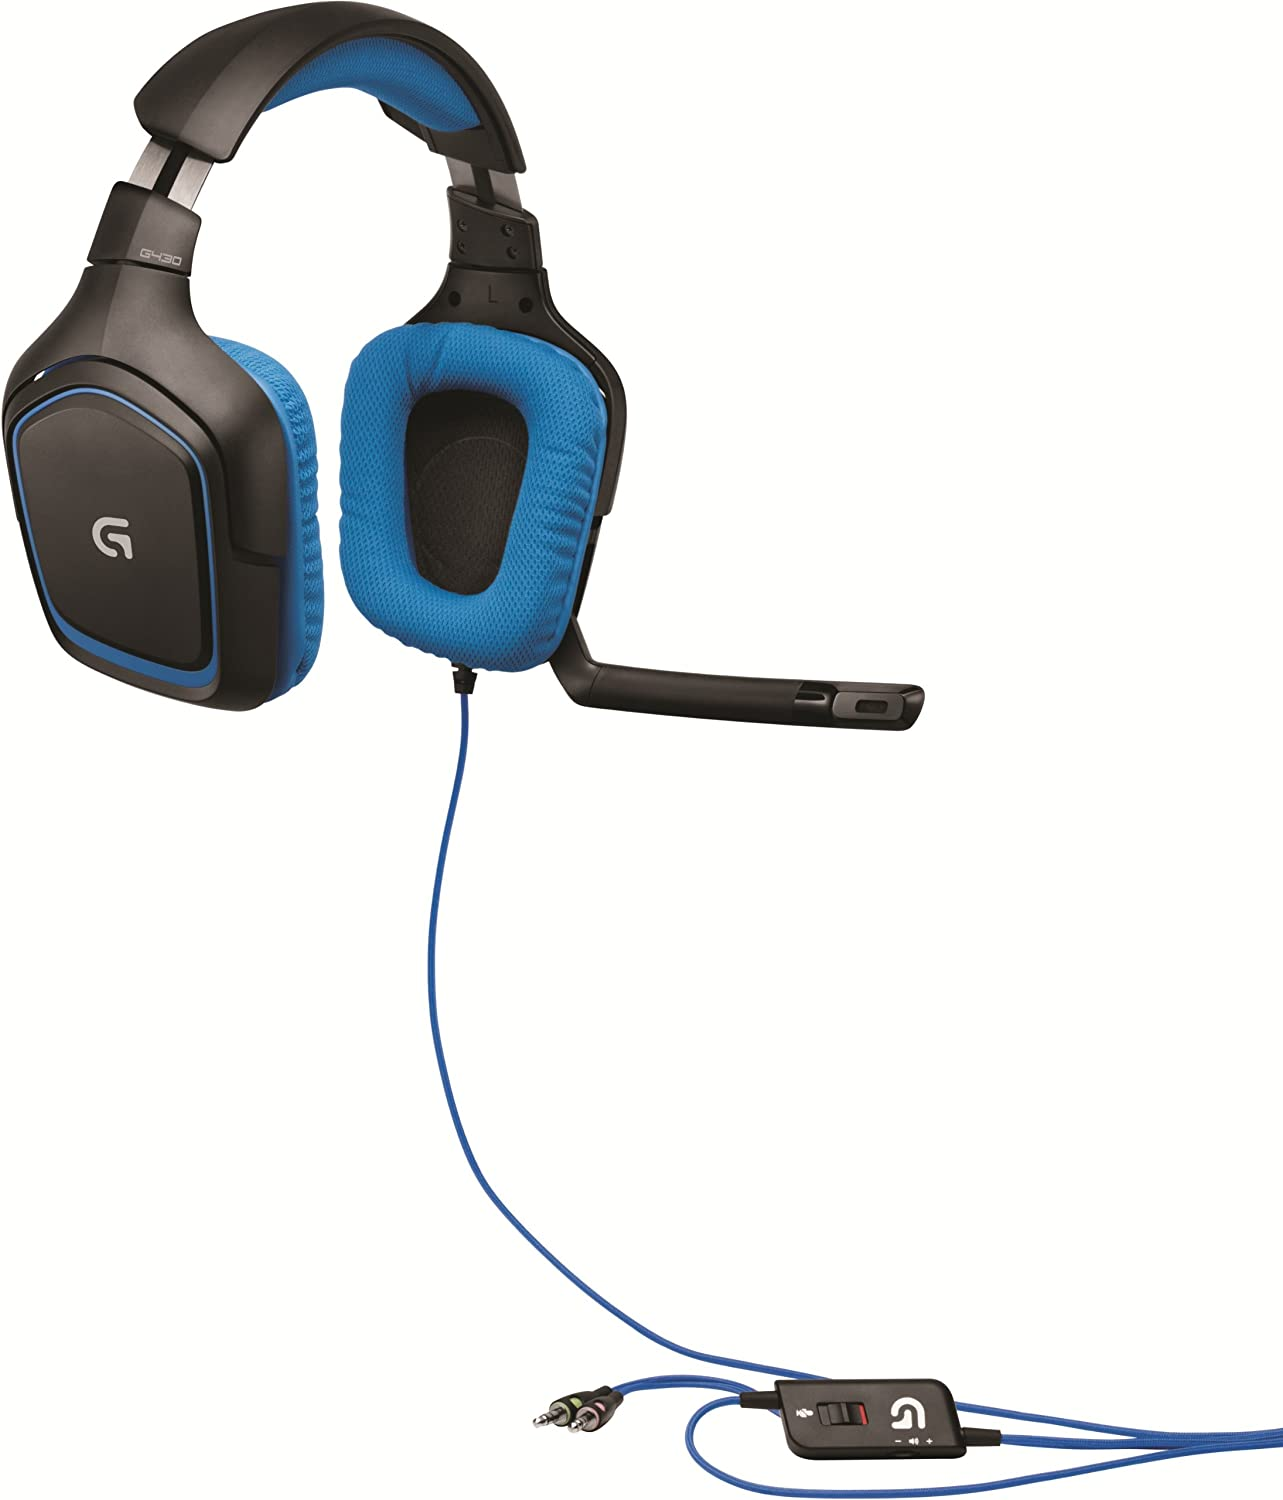 Logitech Headset Wiring Diagram Guide And Troubleshooting Of Usb G430 Diagrams Scematic Rh 47 Jessicadonath De Headphone